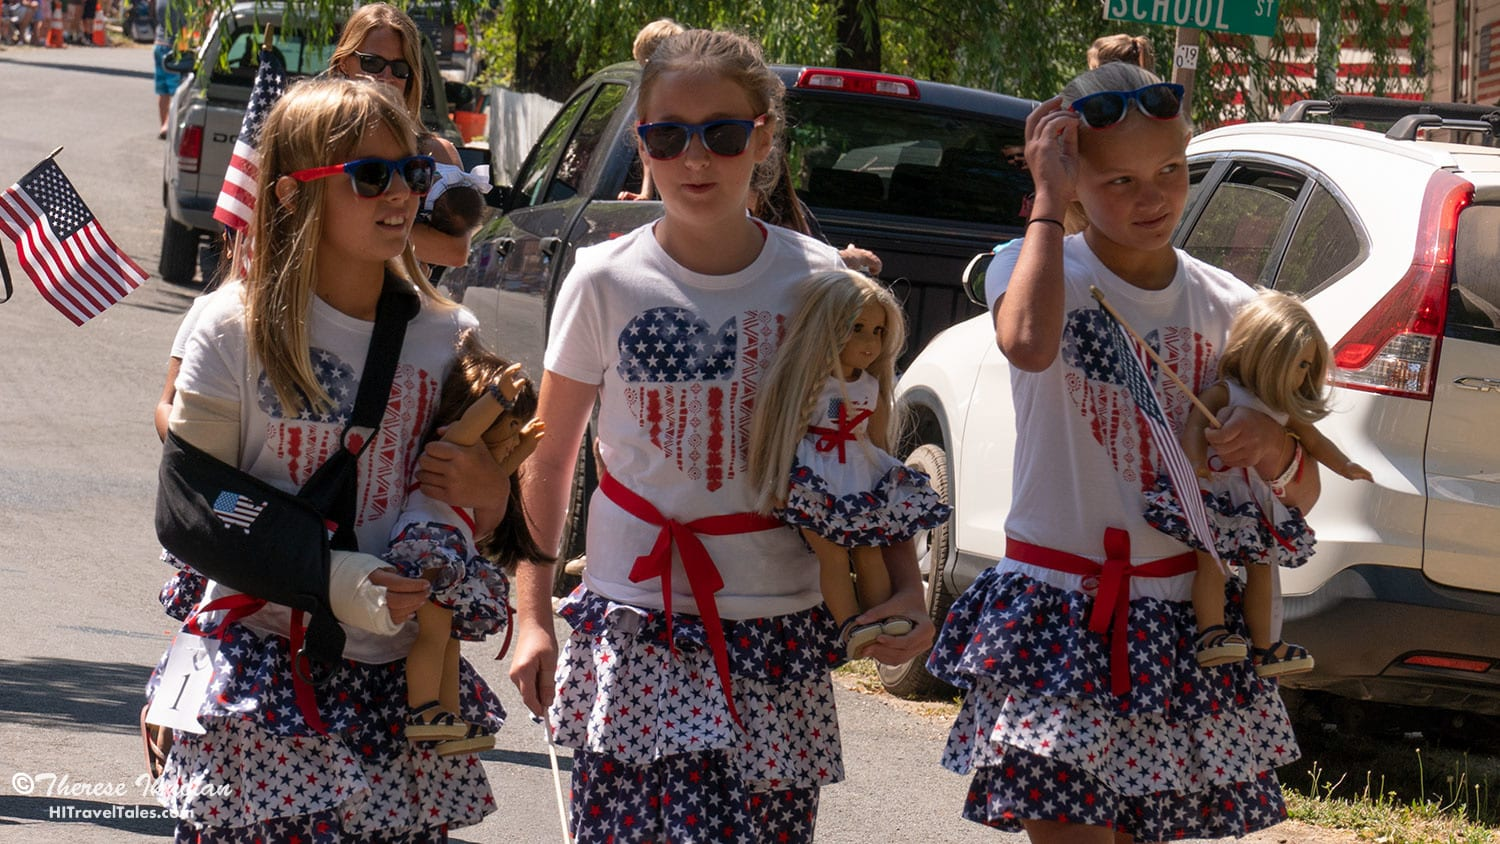 Everybody can march, as did these three friends decked out in red, white and blue with their American Girl dolls.